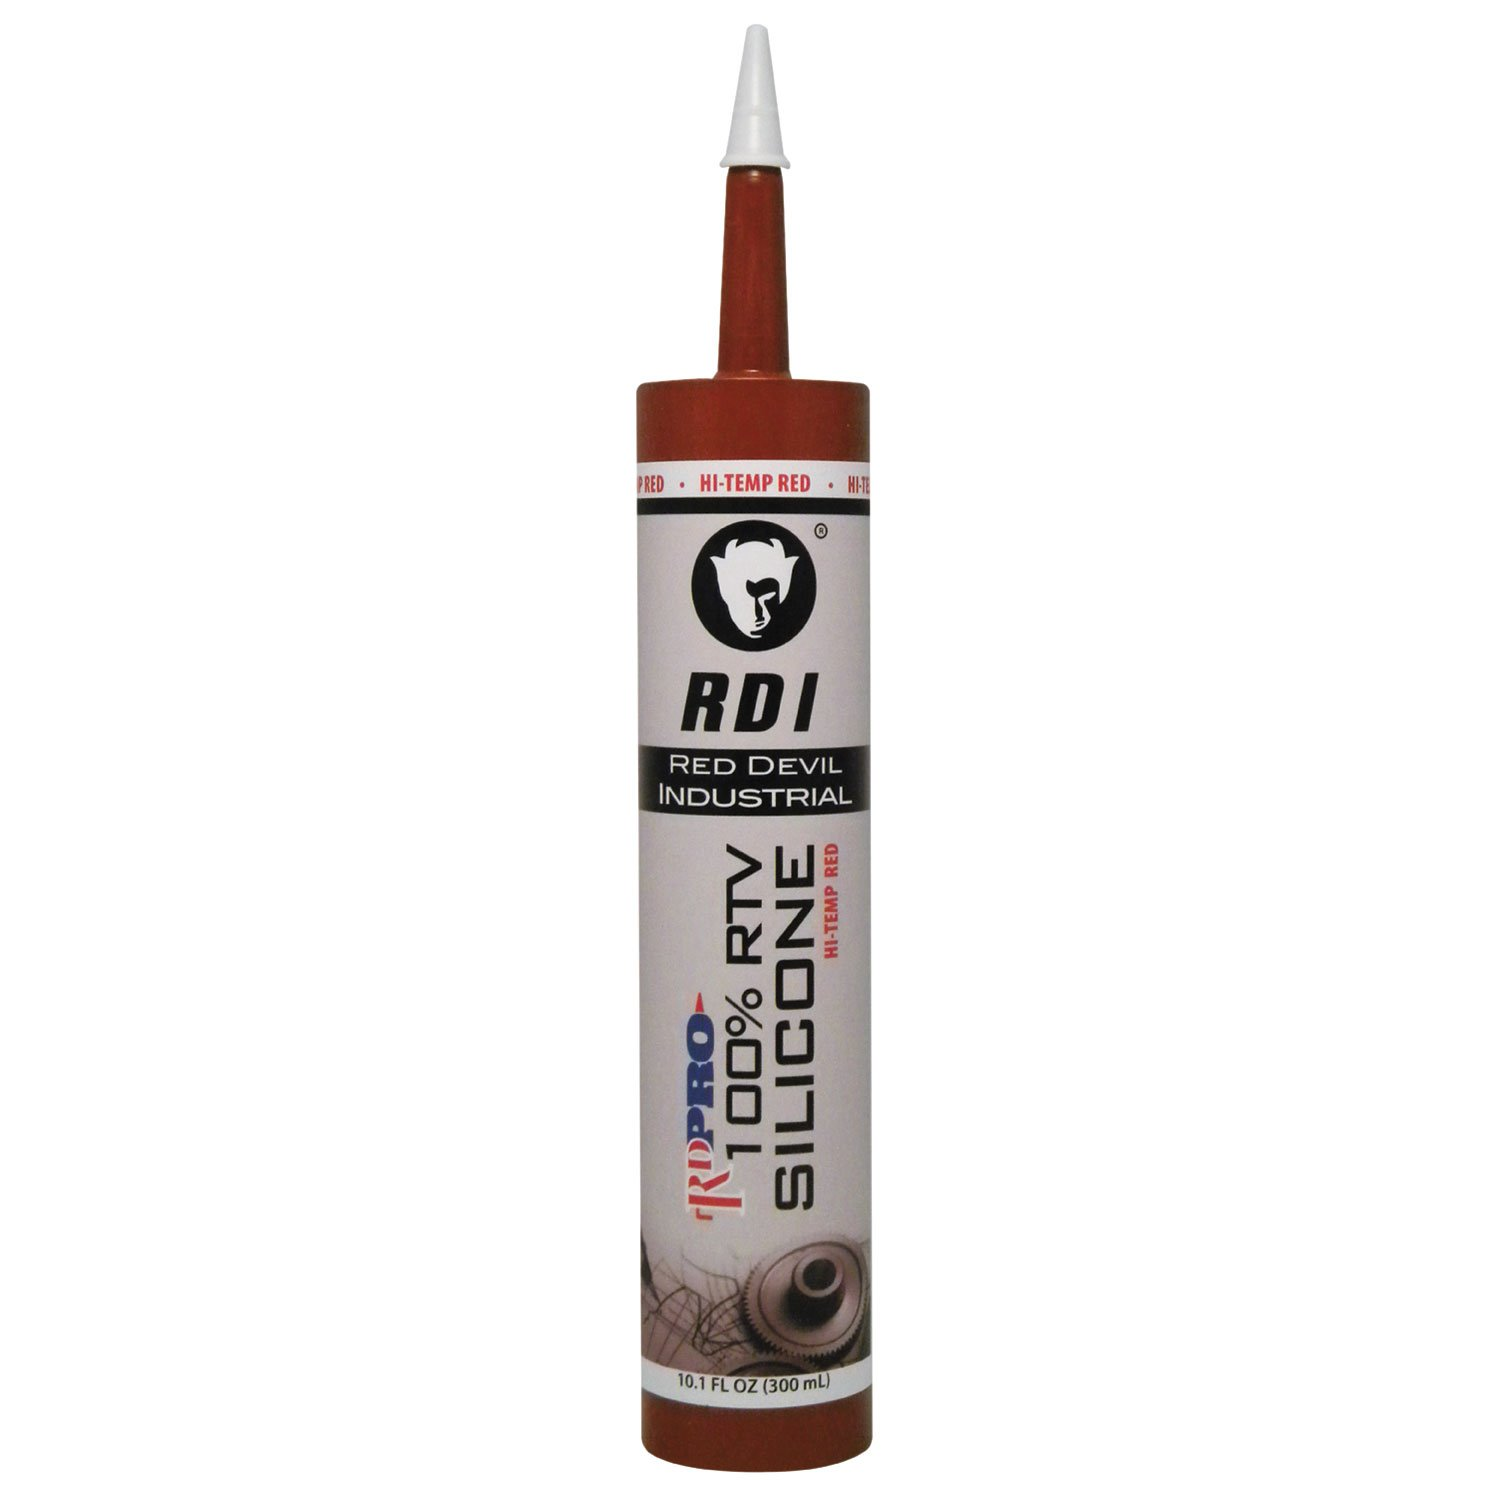 Red Devil 08090I RD PRO 100% Heat Resistant RTV Silicone Sealant, 10.1 oz., Red